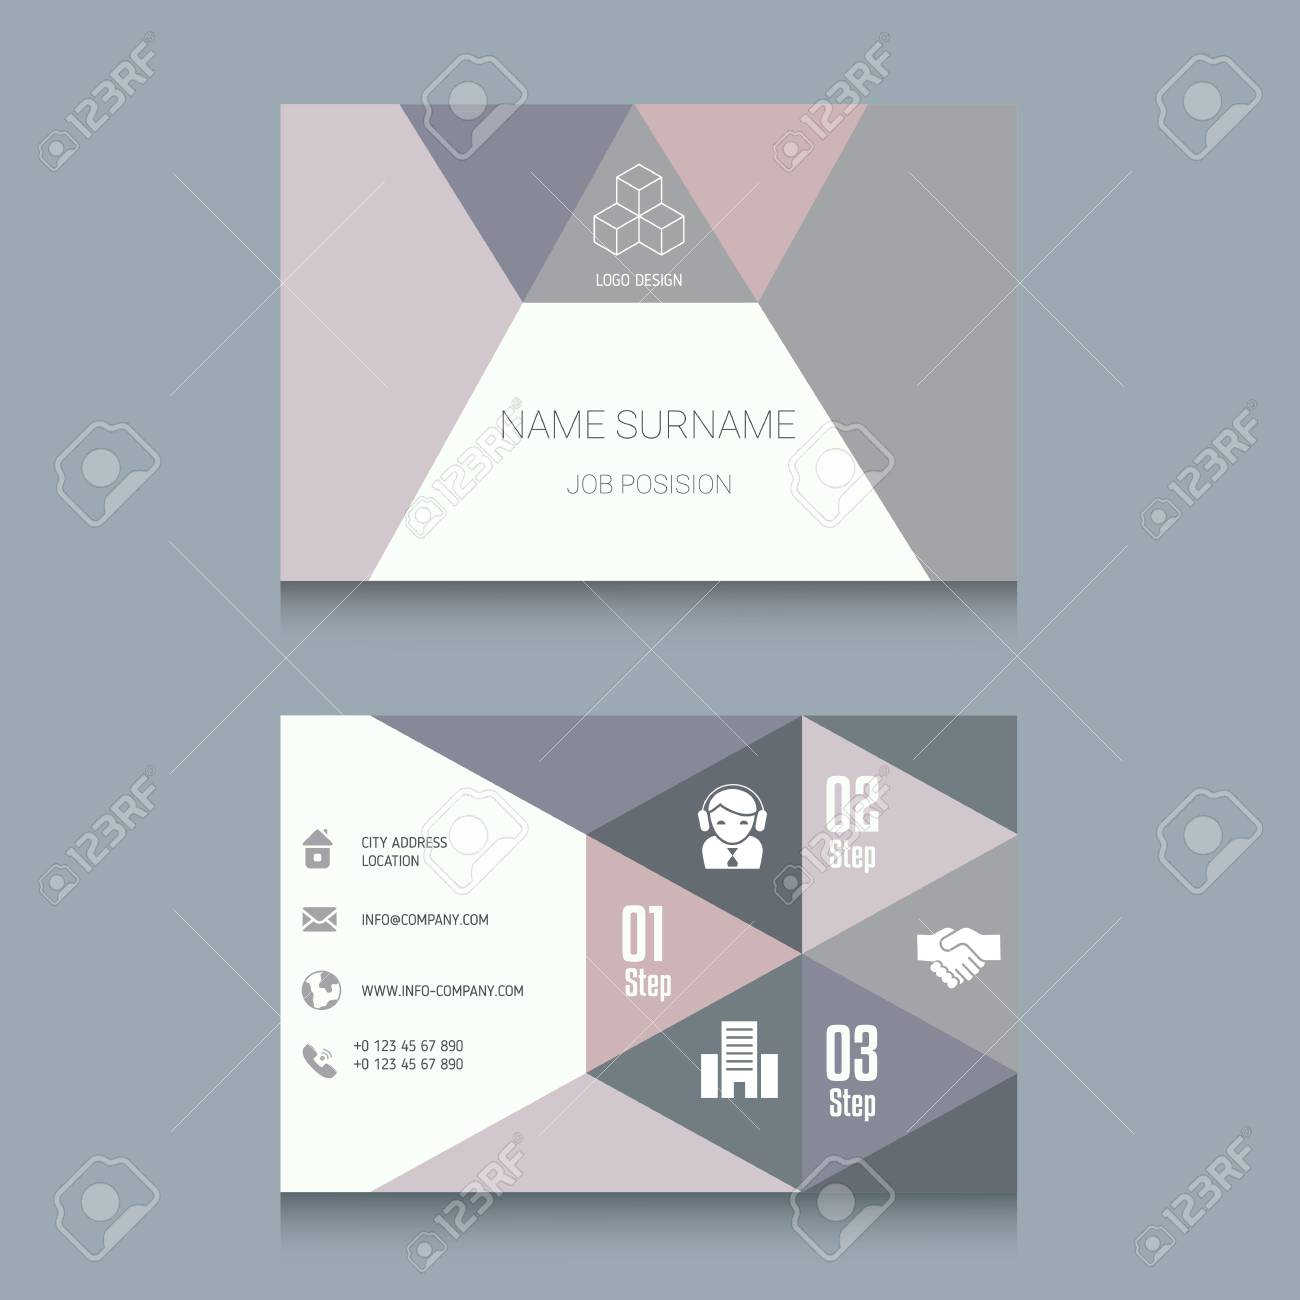 Business card designs easy to adapt business vector set royalty business card designs easy to adapt business vector set stock vector 75415165 colourmoves